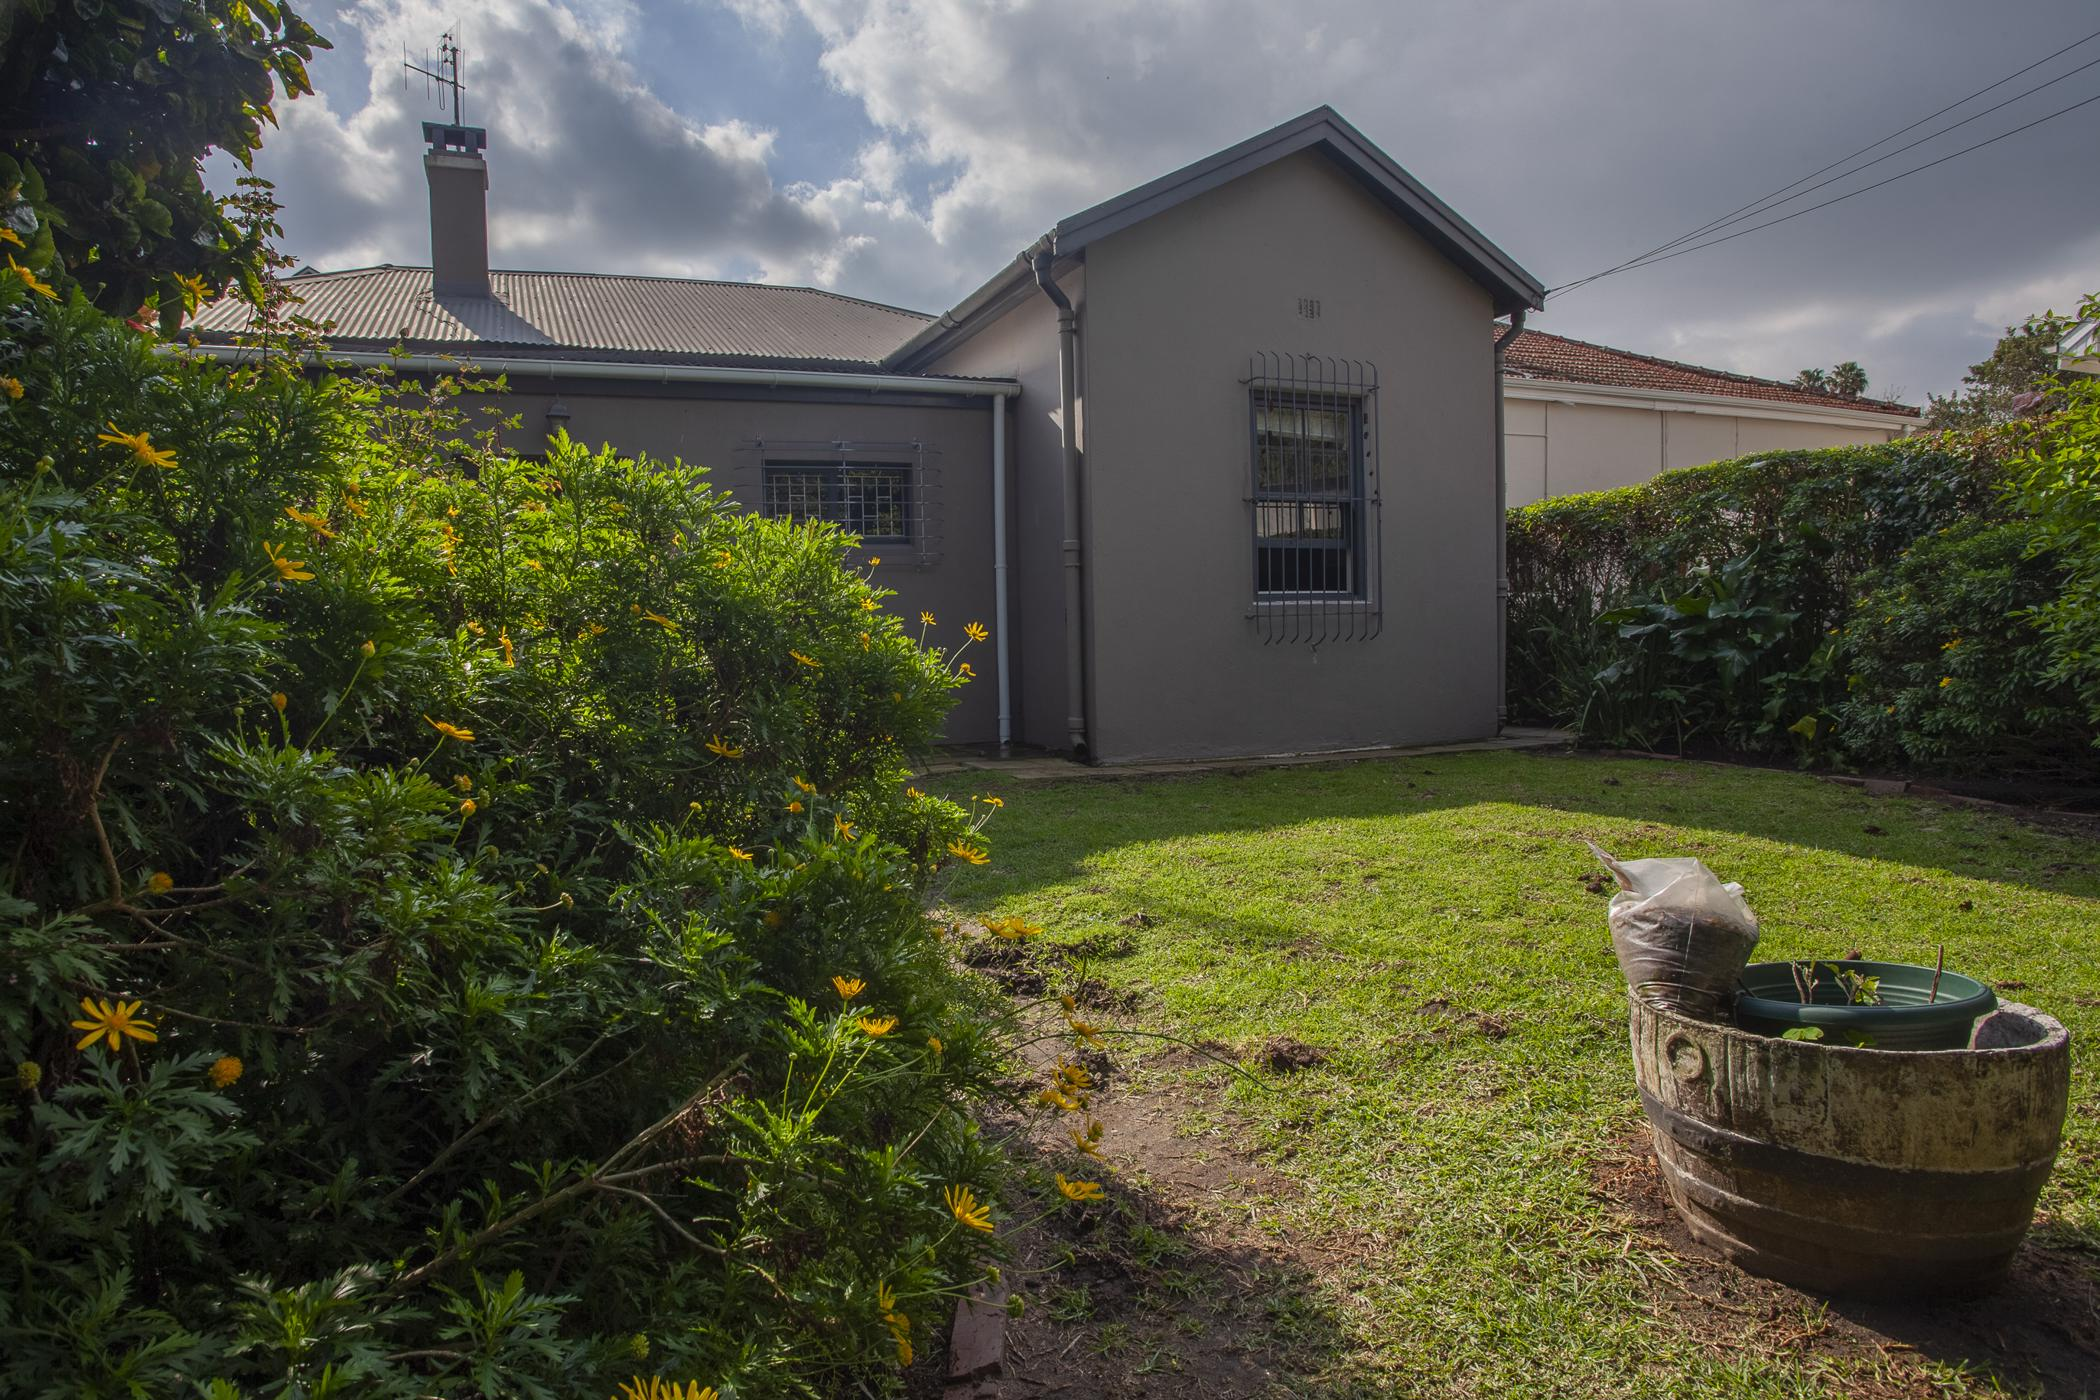 3 Bedroom House For Sale Rondebosch Kw1450953 Pam